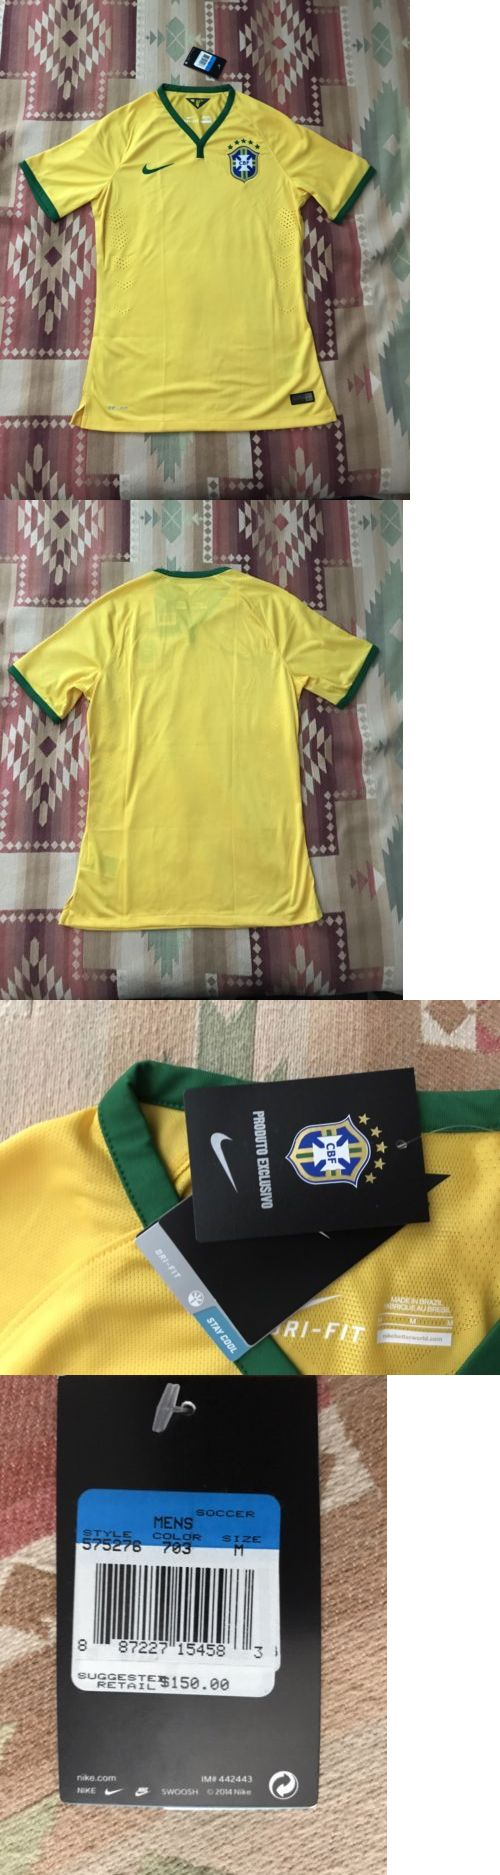 Soccer-National Teams 2891: Nike Brasil World Cup Authentic Home Soccer Jersey Player Issue Neymar Psg -> BUY IT NOW ONLY: $75 on eBay!